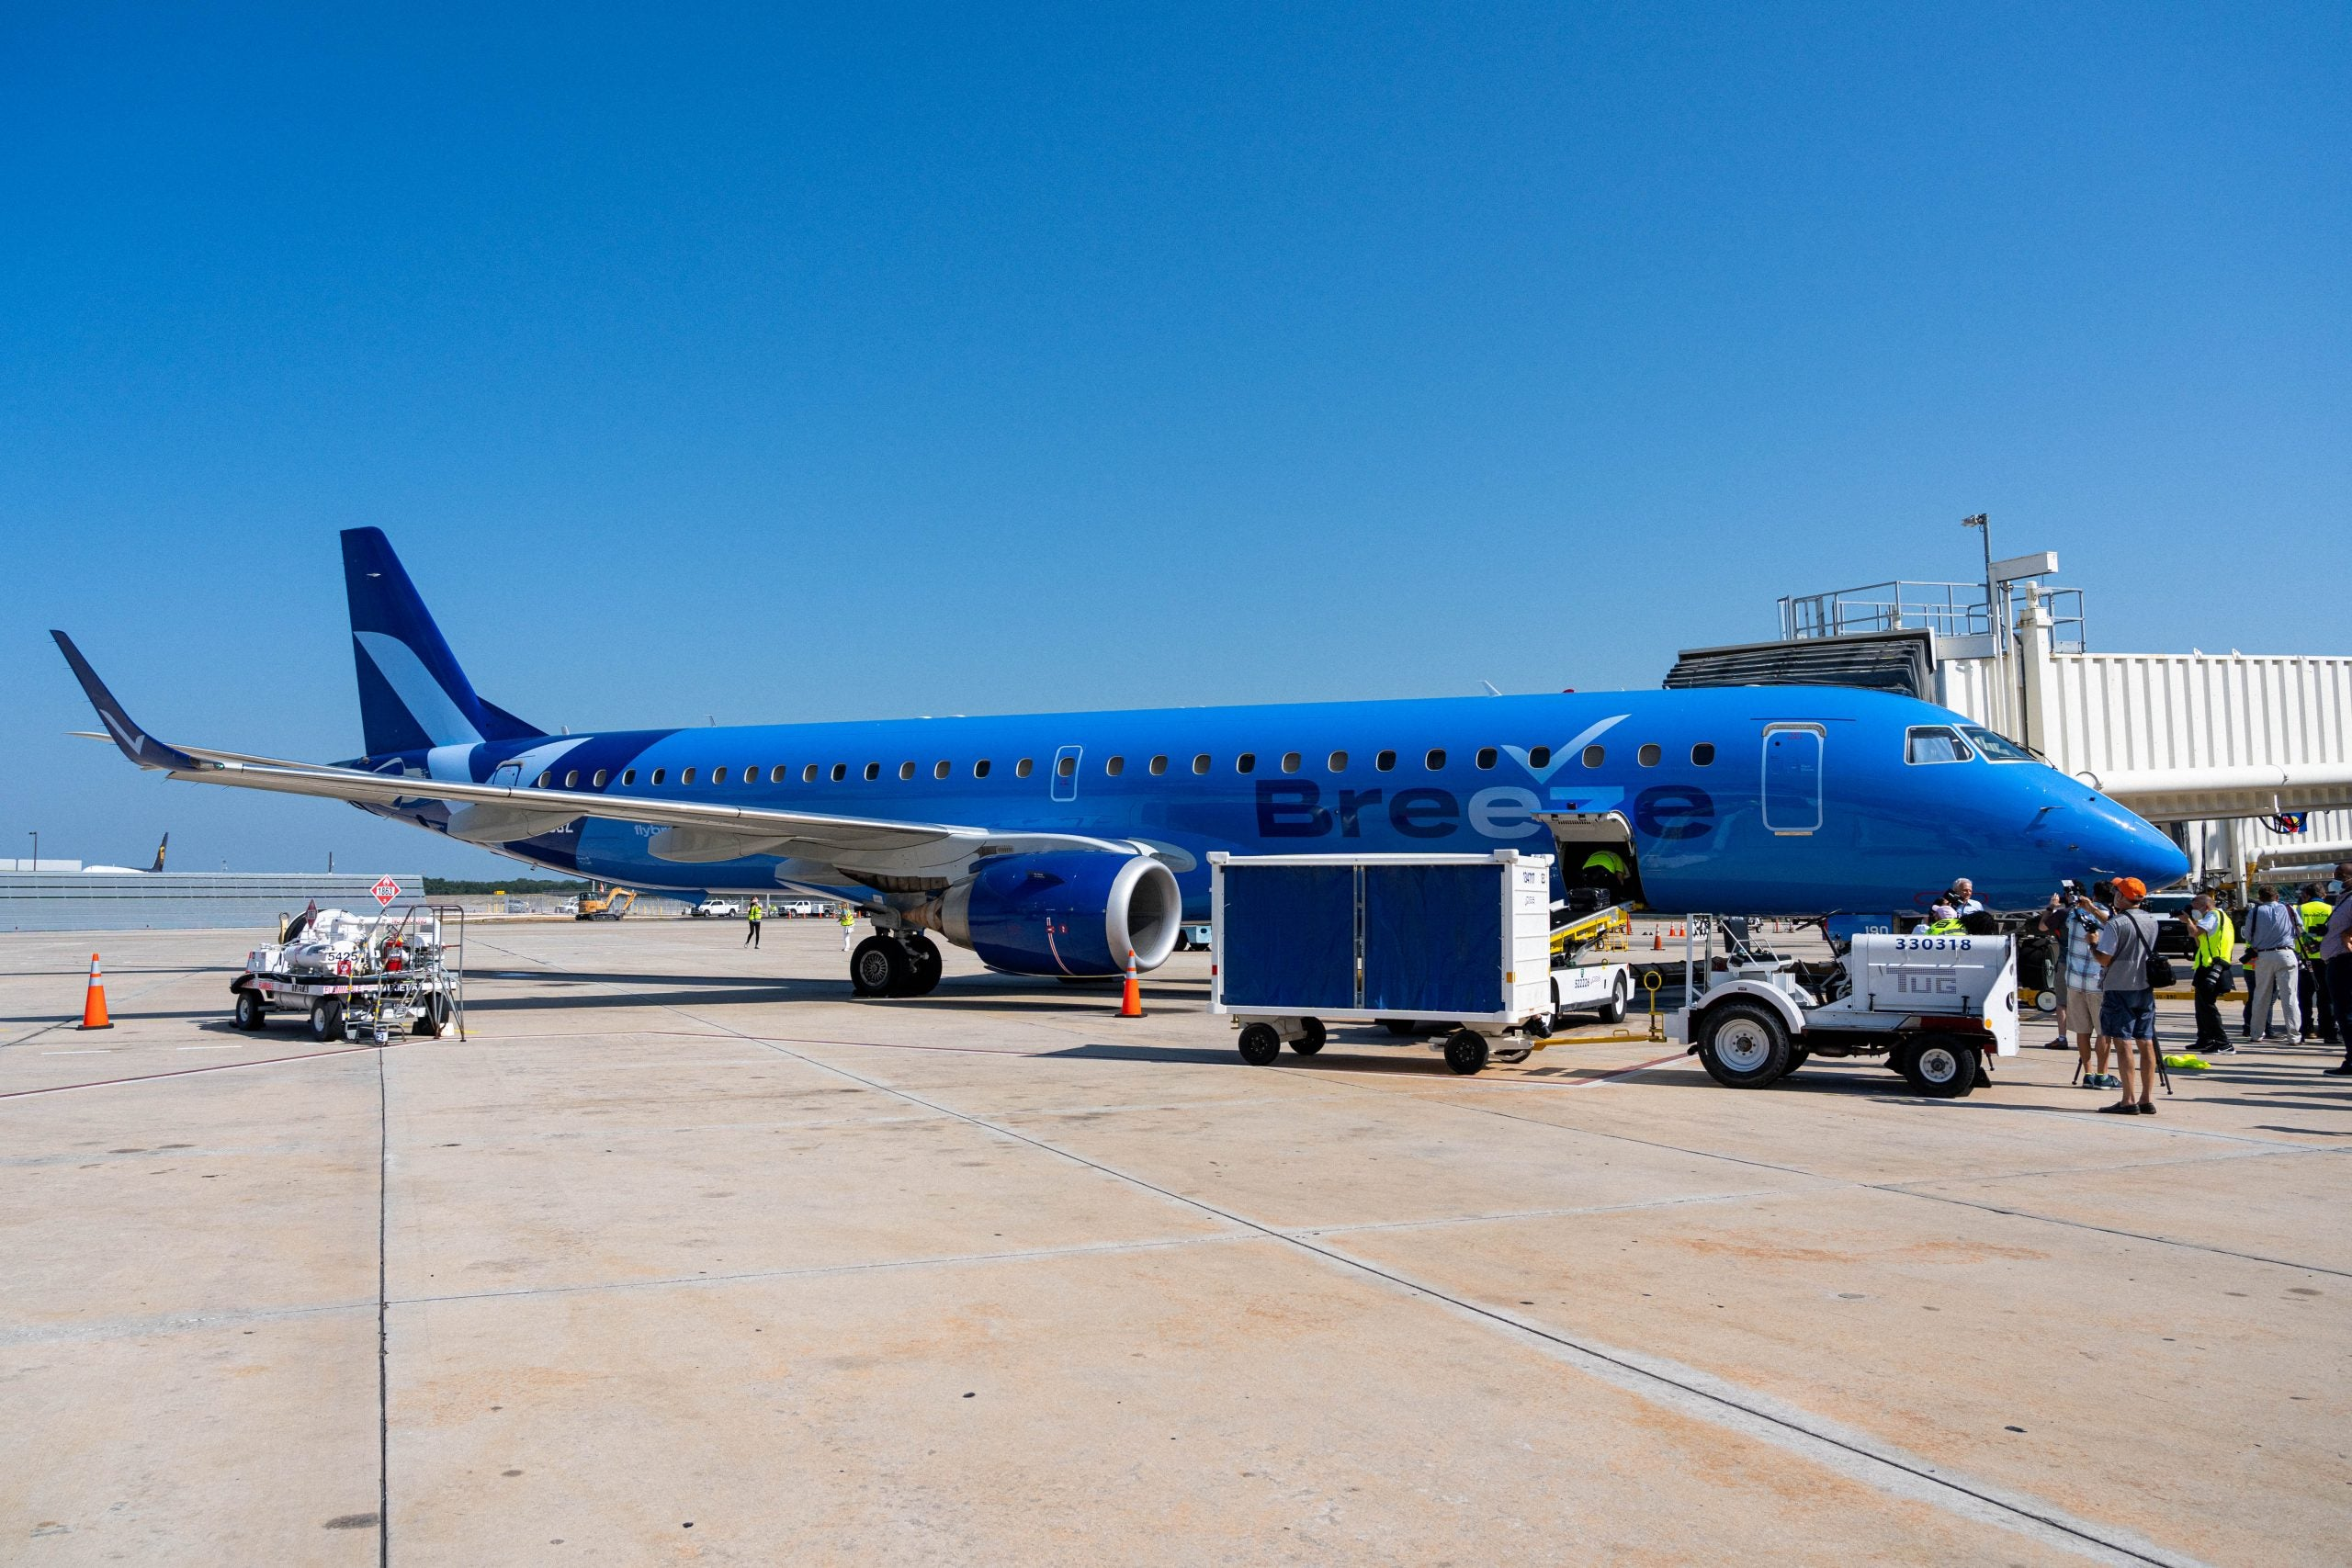 First look: What Breeze Airways, the new airline by JetBlue founder David Neeleman, brings to the skies